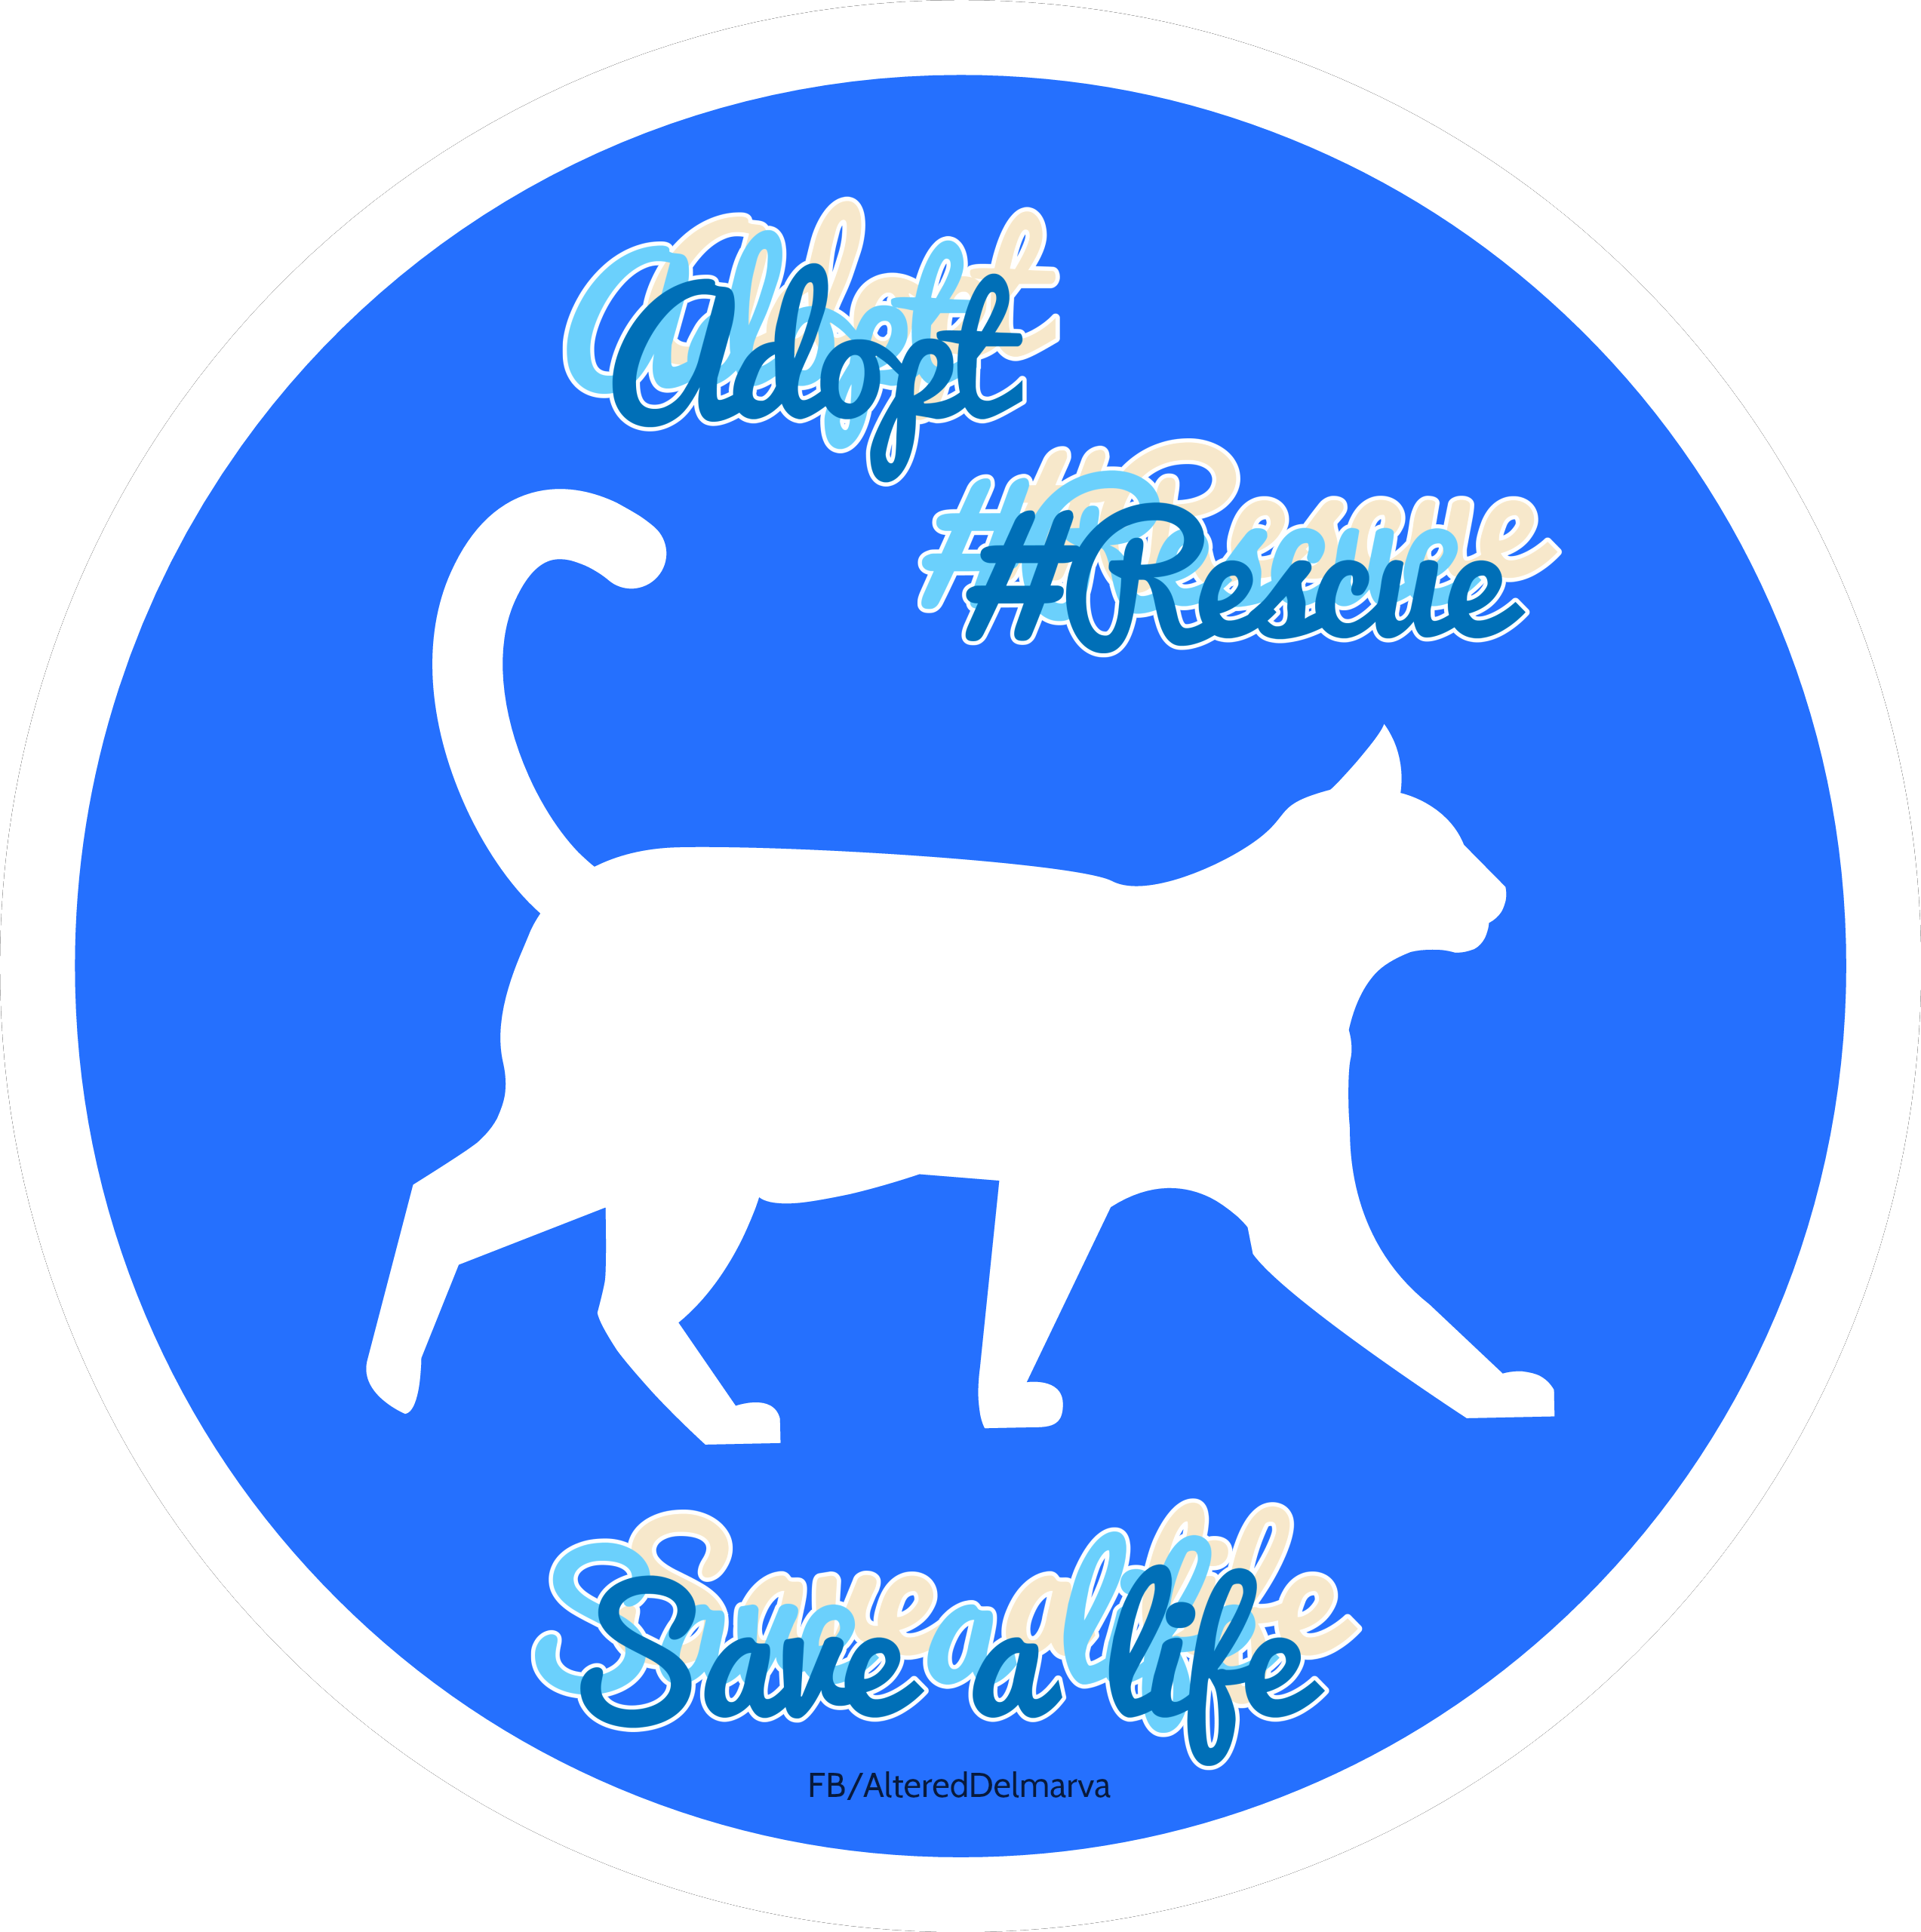 Dog and cat shelter clipart banner transparent library free images promoting adoption and rescue of shelter pets to ... banner transparent library